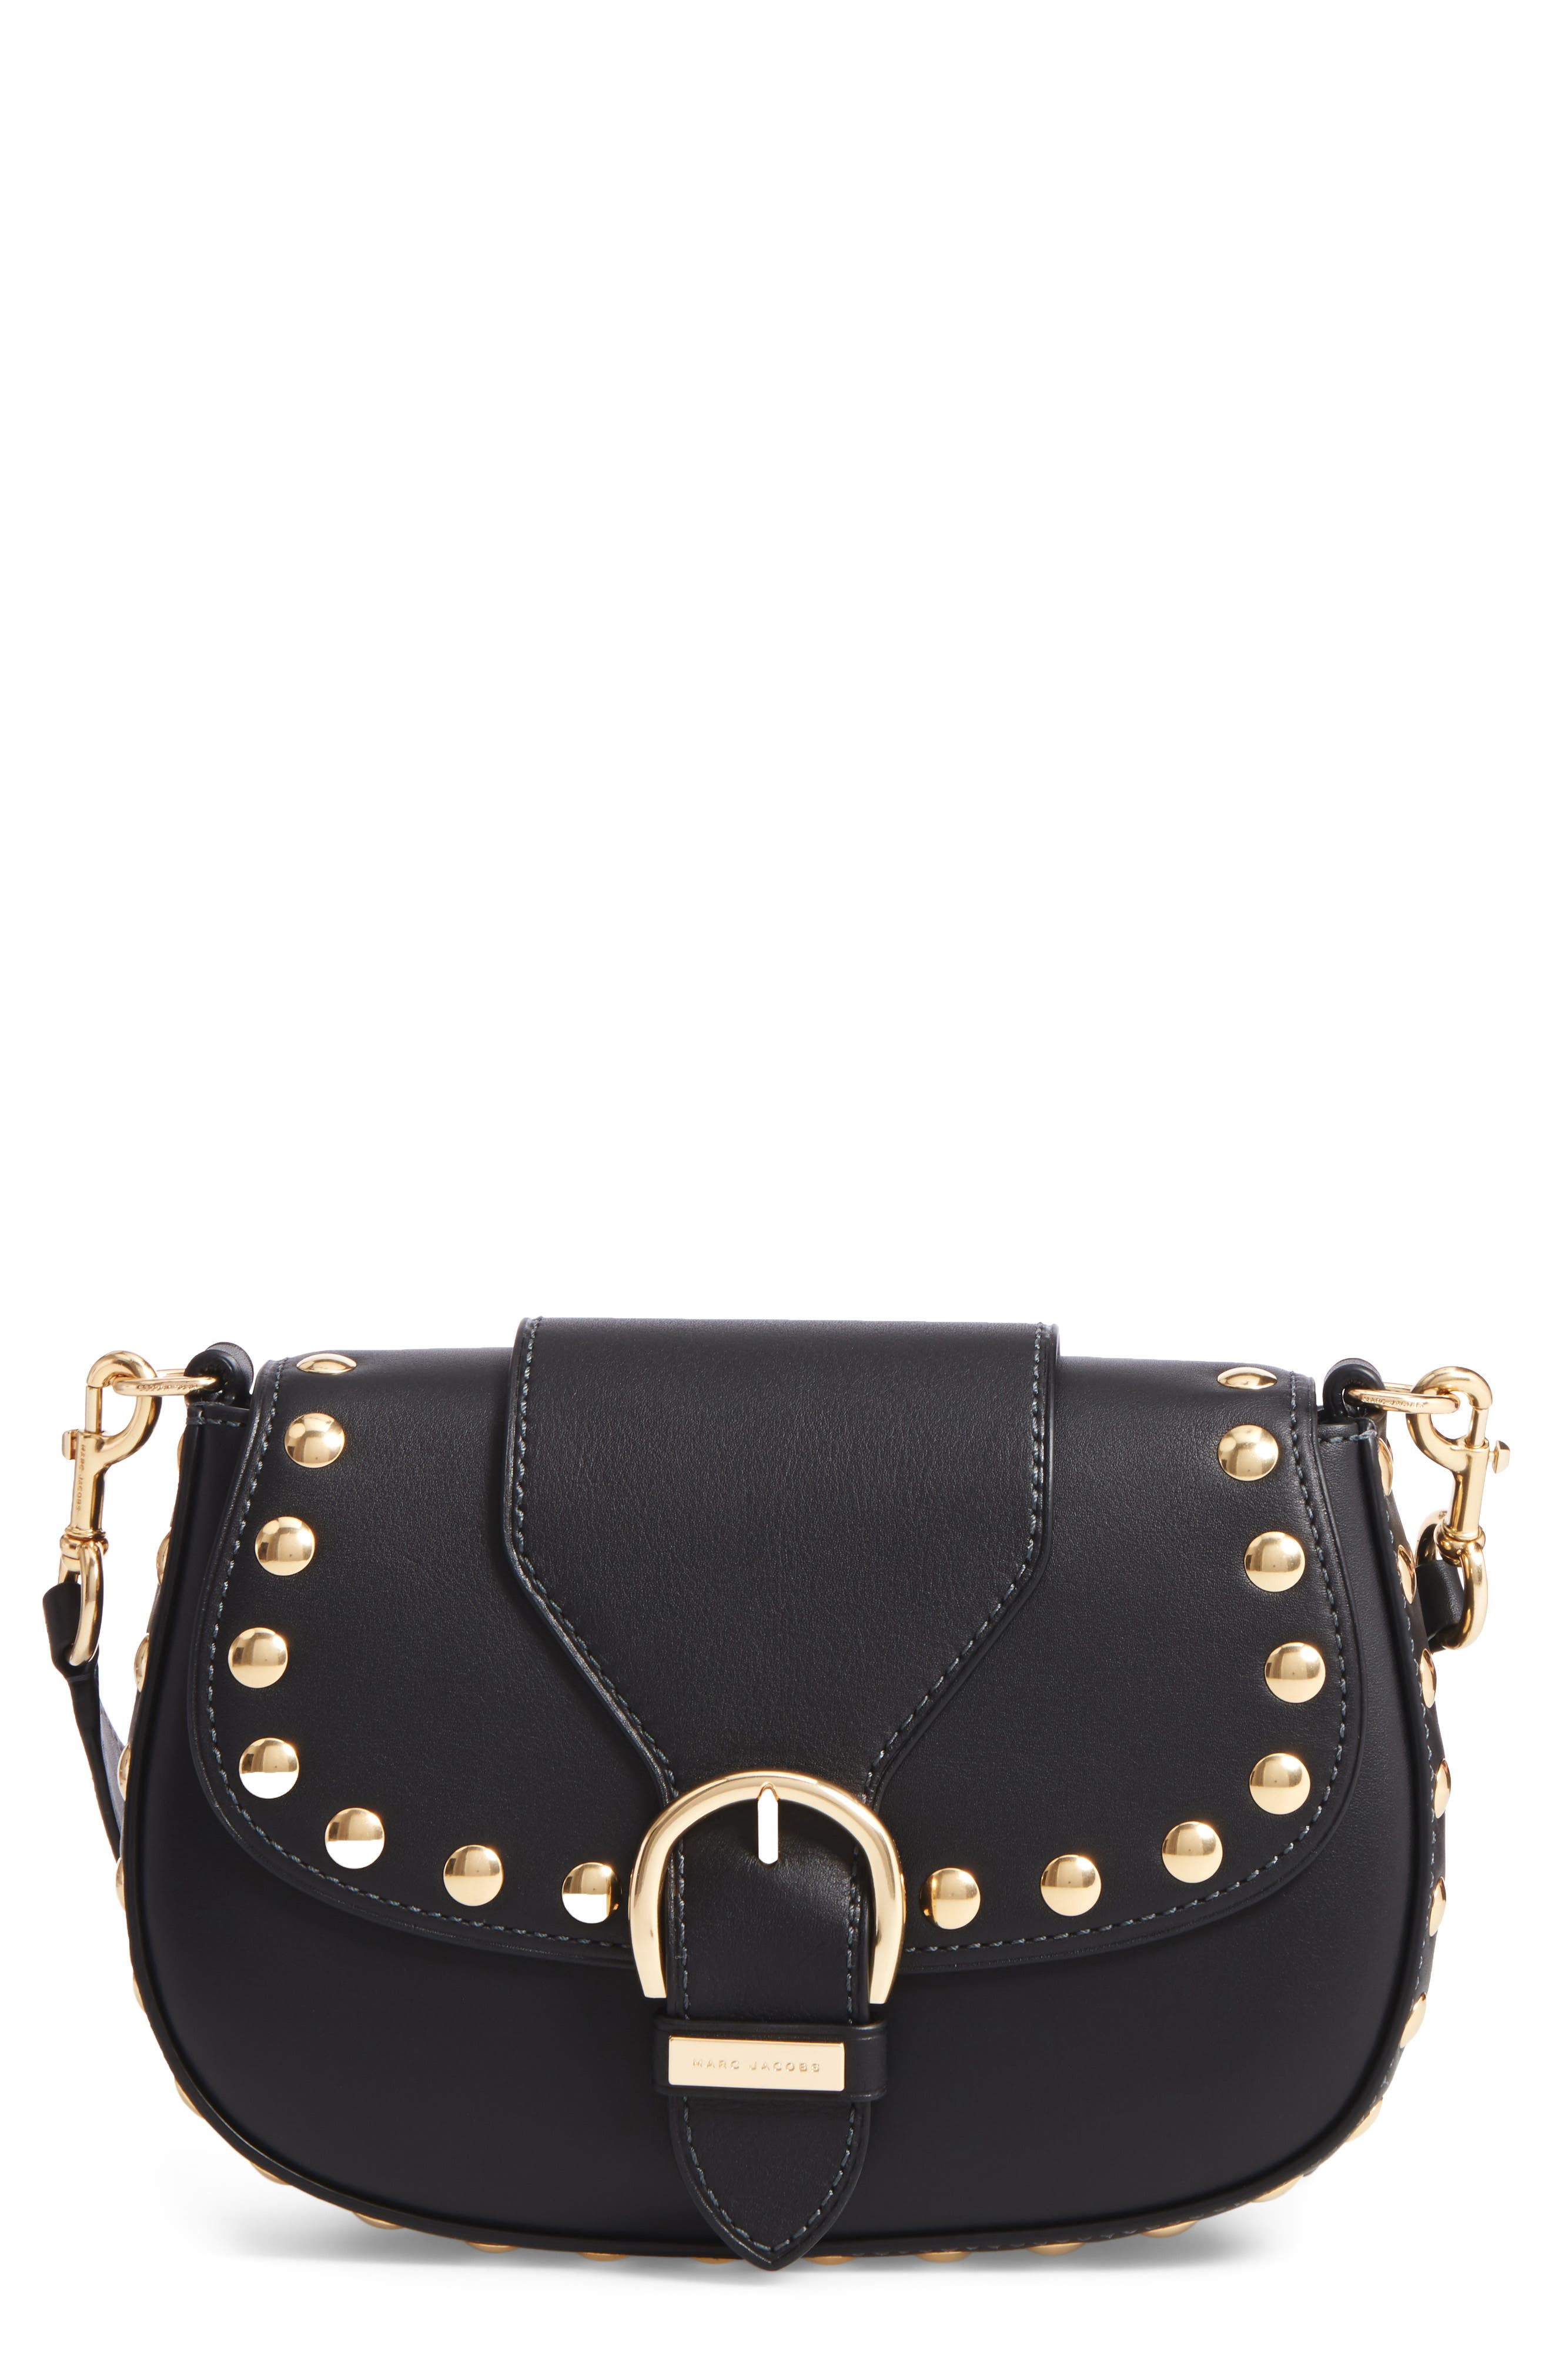 Main Image - MARC JACOBS Studded Navigator Leather Crossbody Bag